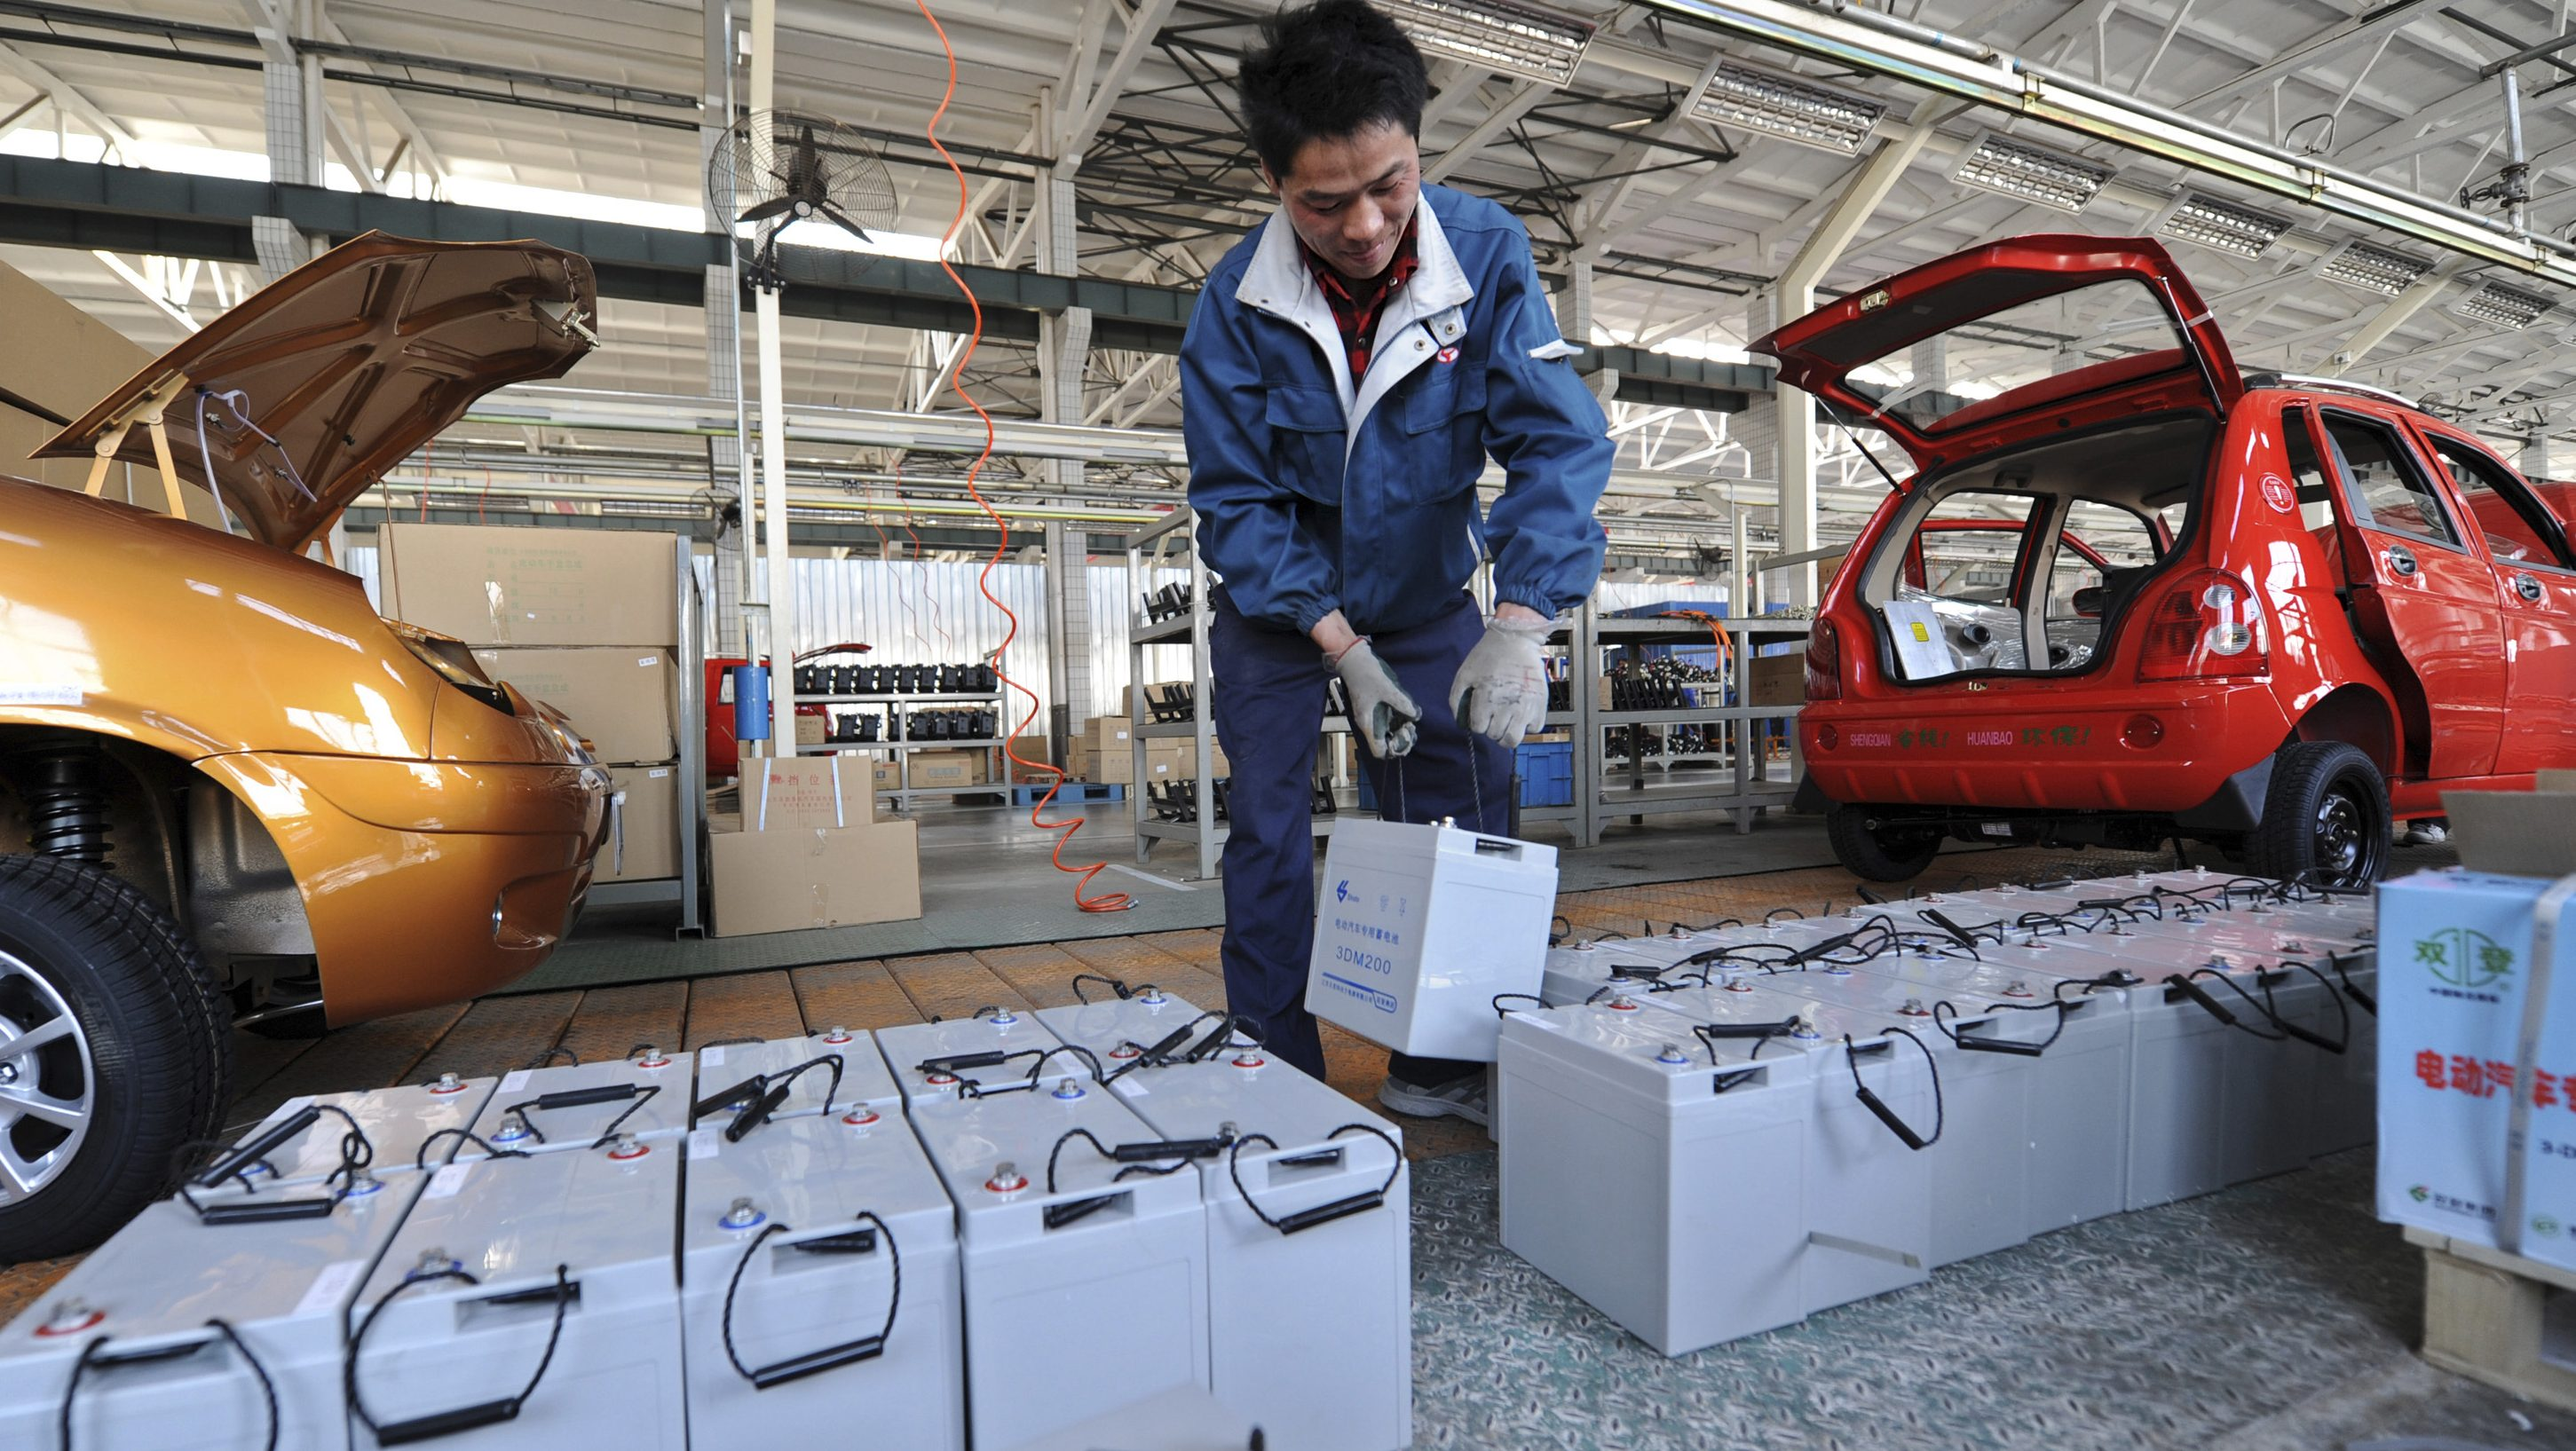 A employee carries a battery as he works on an assembly line of electric cars at a factory of Shandong Shifeng (Group) Co. Ltd. in Jinan, Shandong province April 6, 2012. Shifeng is the top player in the market, with about a 50 p ercent share. Shifeng delivered nearly 30,000 cars to its 200 dealer outlets across the country in 2011. Sales this year could hit 50,000, about a 13-fold increase over the level in 2008, the first full year of sales, said company vice president Lin Lianhua. Picture taken April 6, 2012.